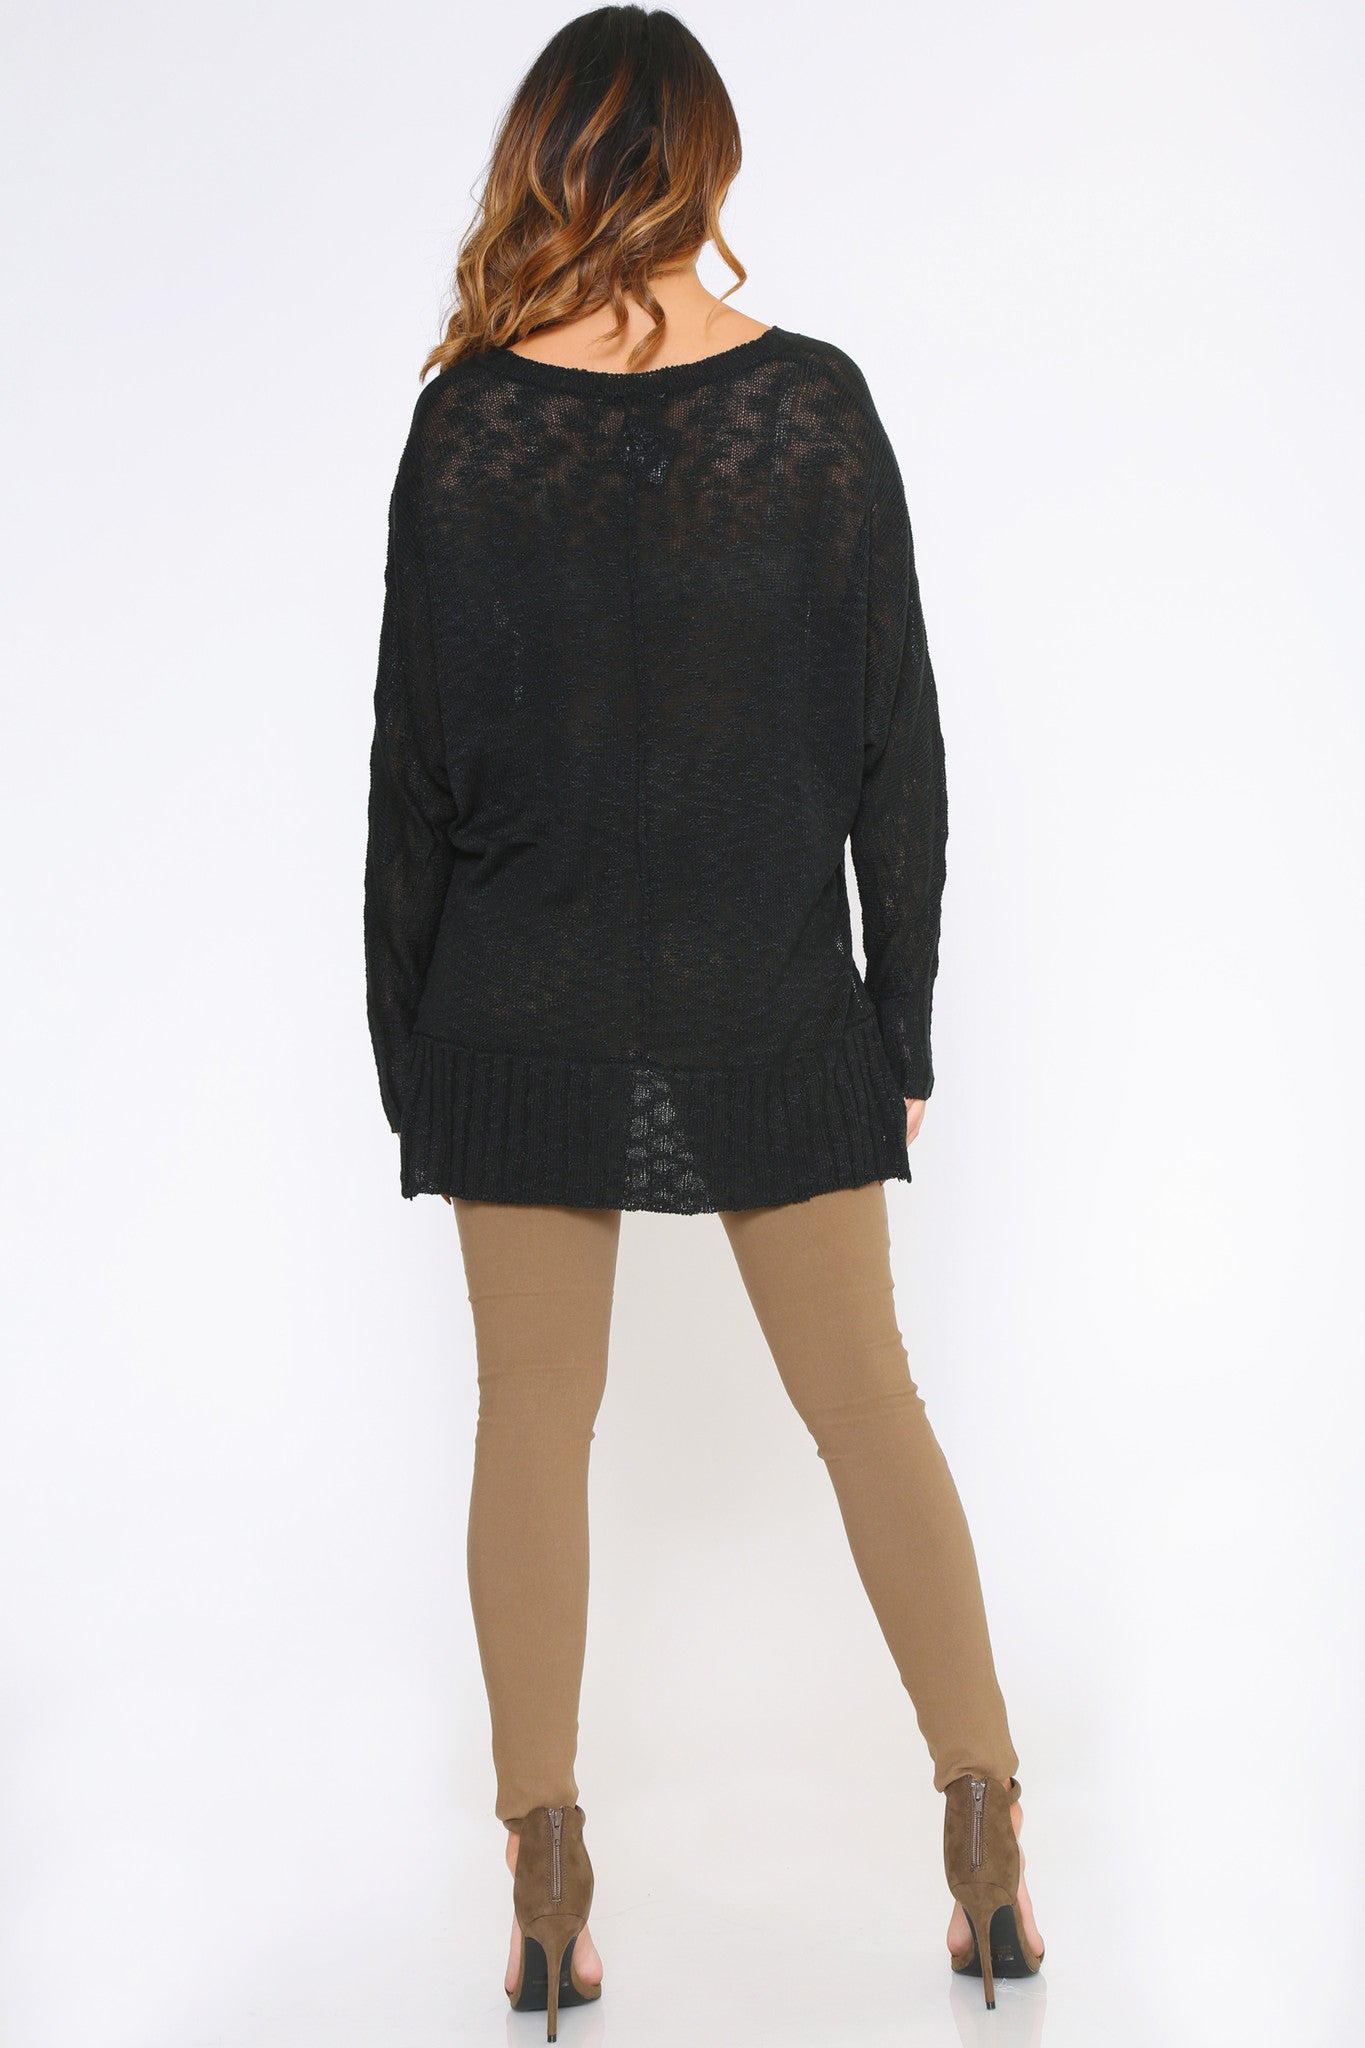 KARINA SWEATER - Glam Envy - 3